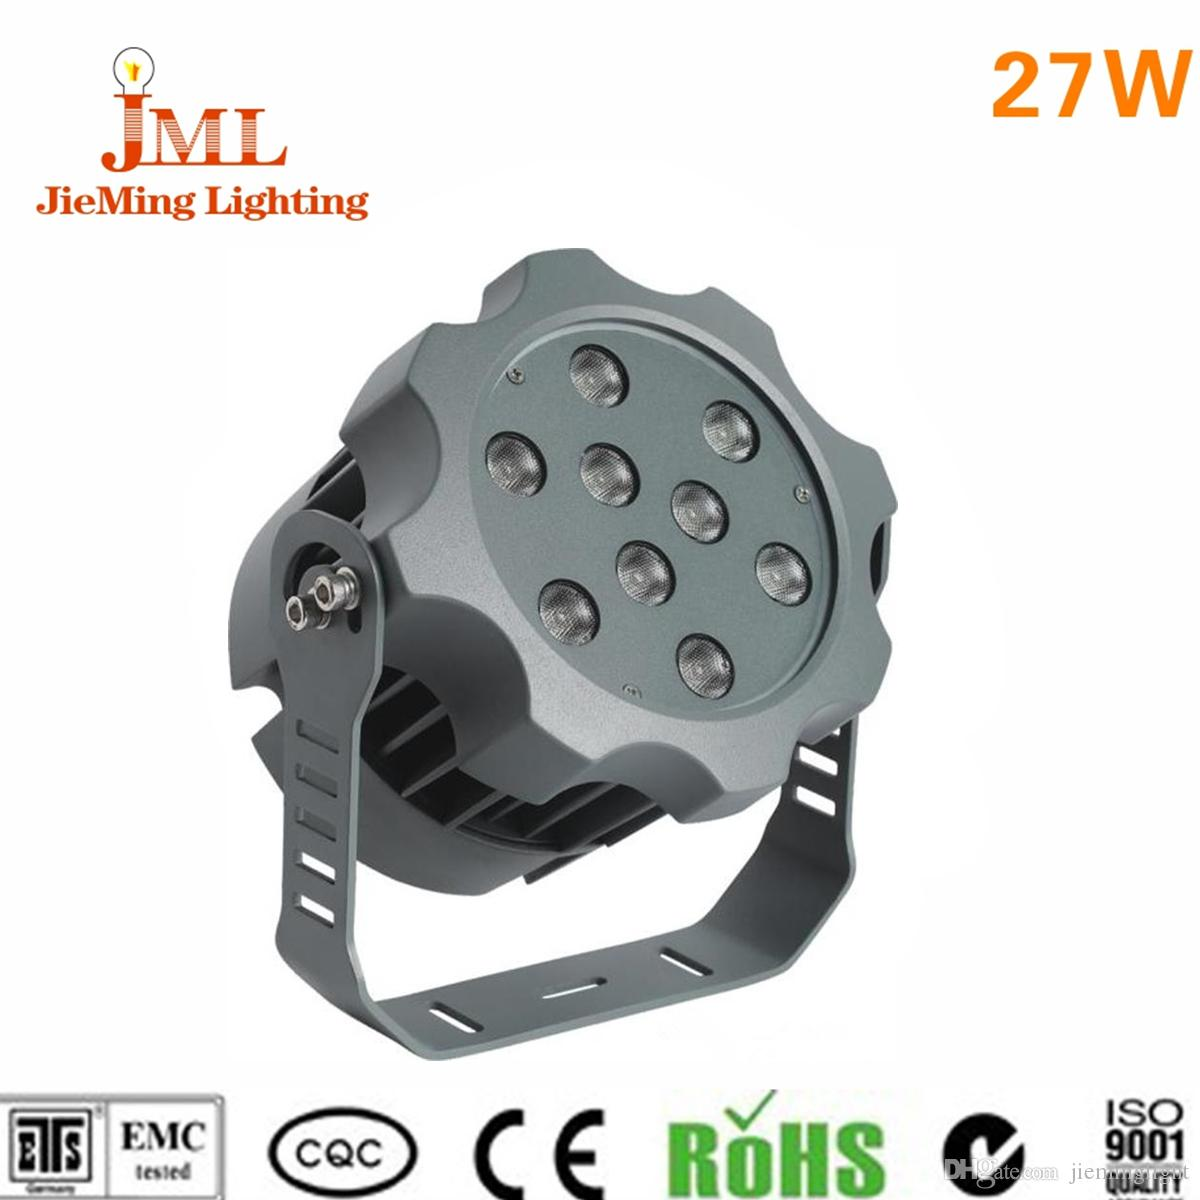 Outdoor lighting application outway roshceccc certification see larger image xflitez Image collections